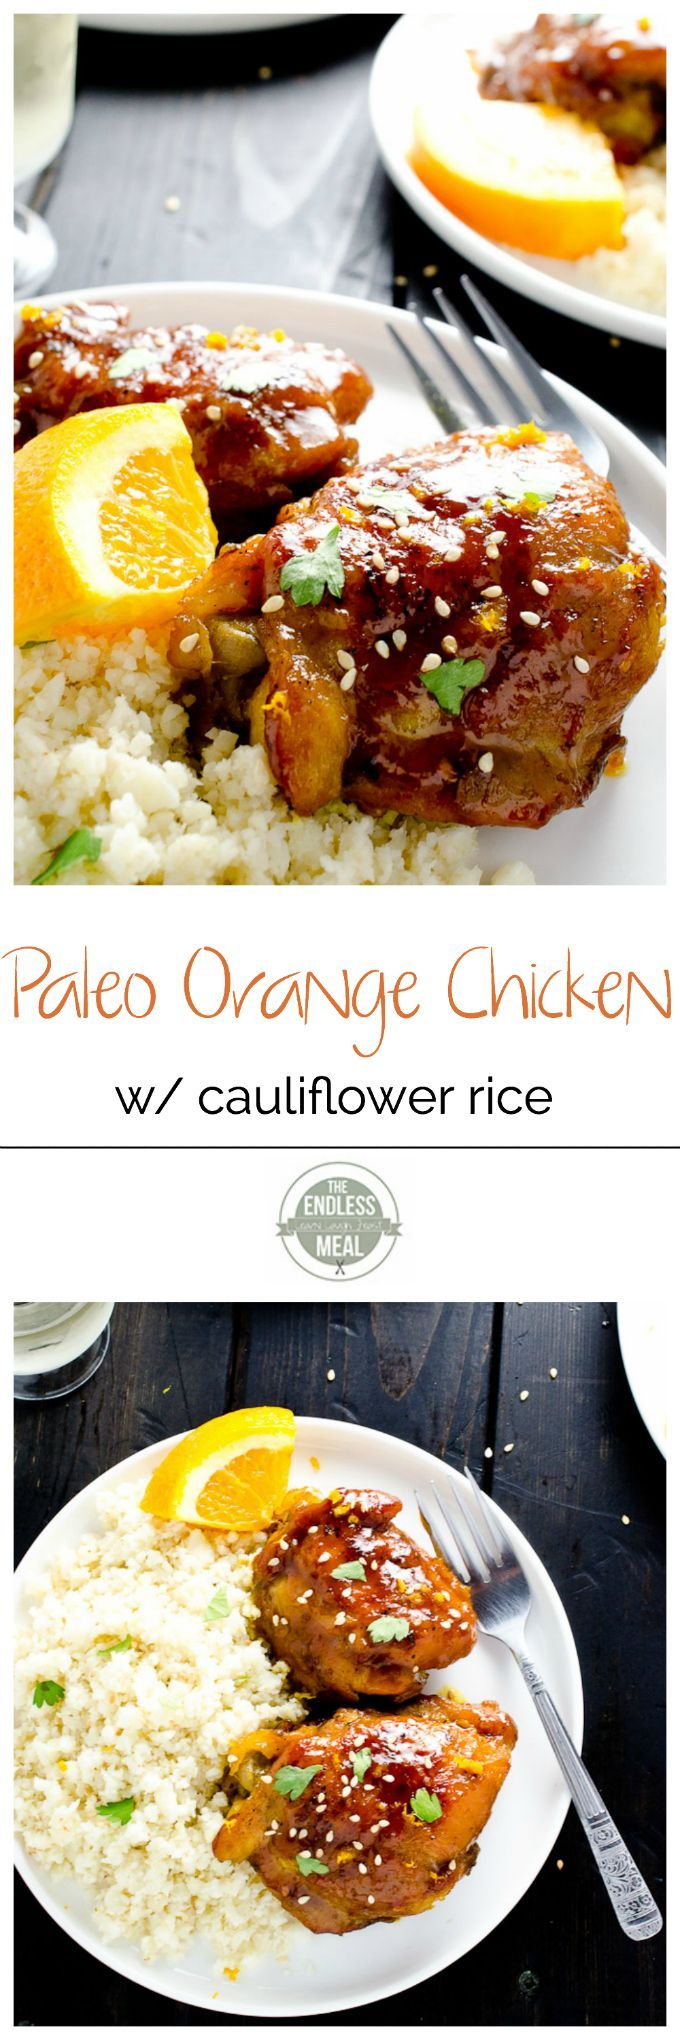 Paleo Orange Chicken with Cauliflower Rice